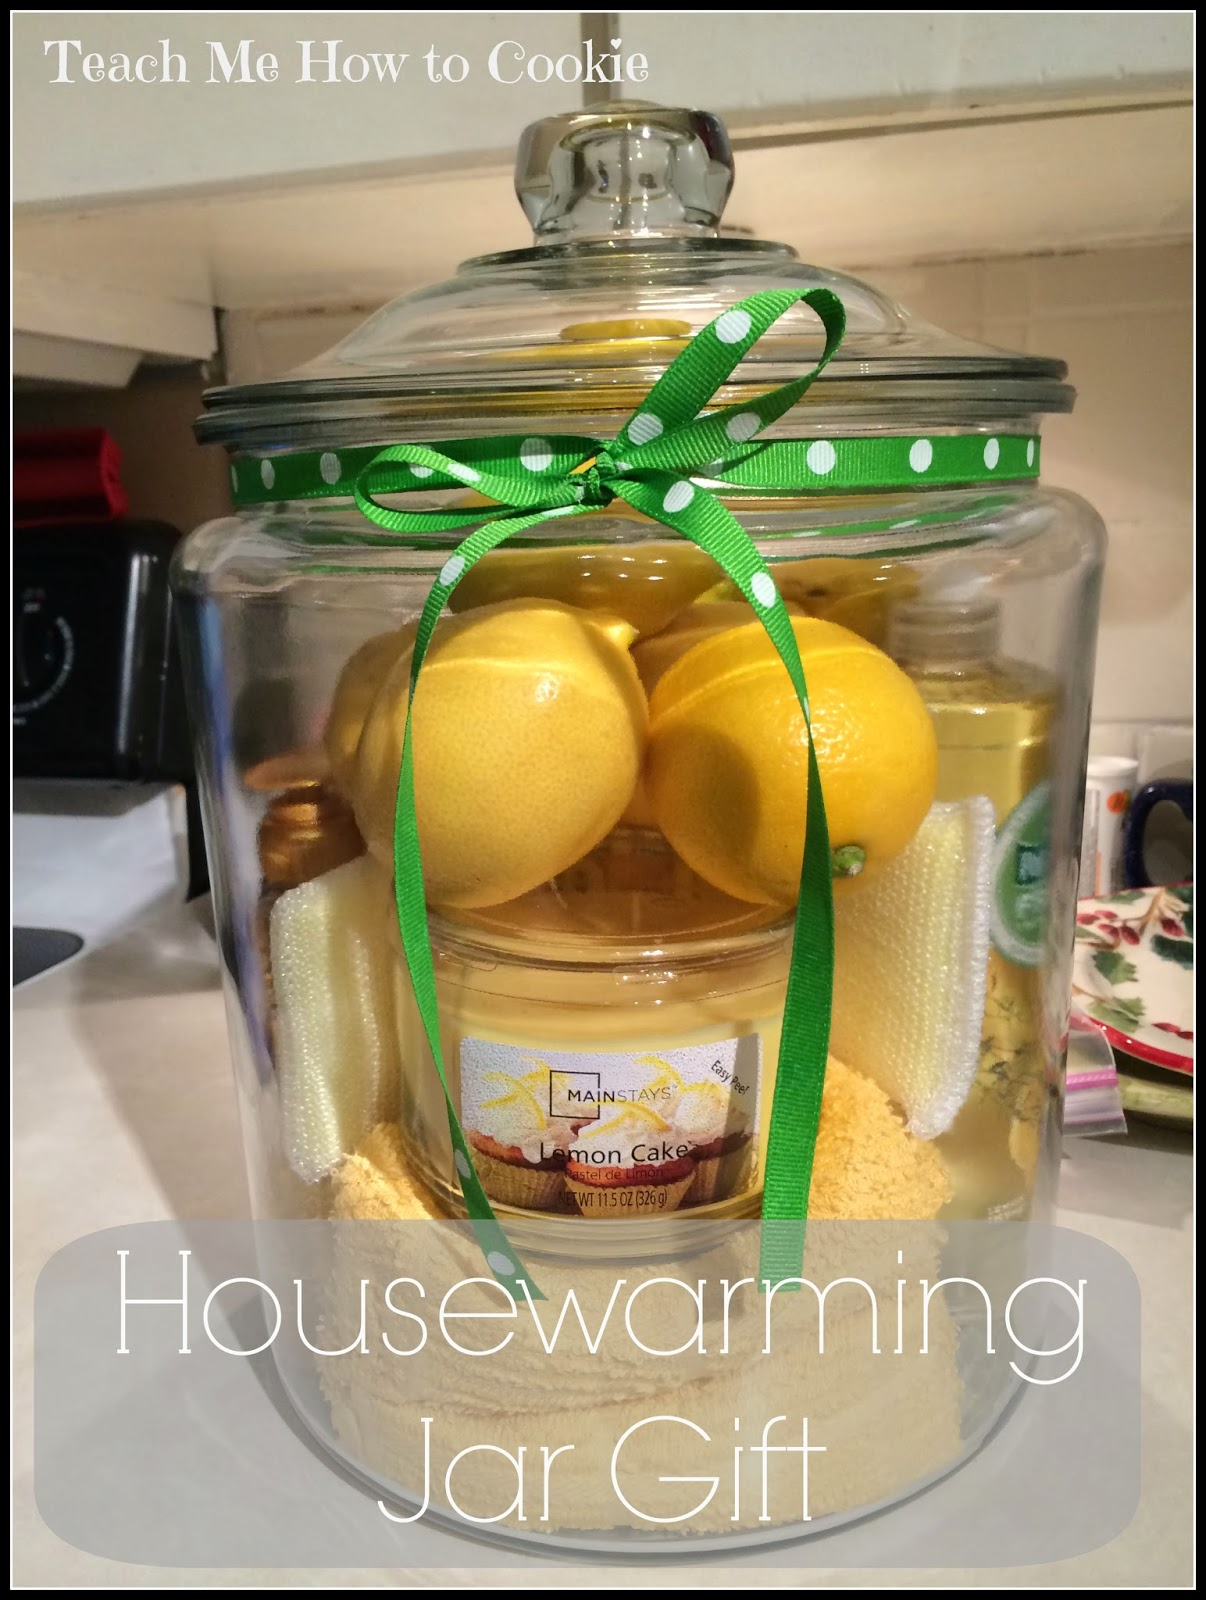 Teach me how to cookie diy house warming gift for Home warming gift ideas